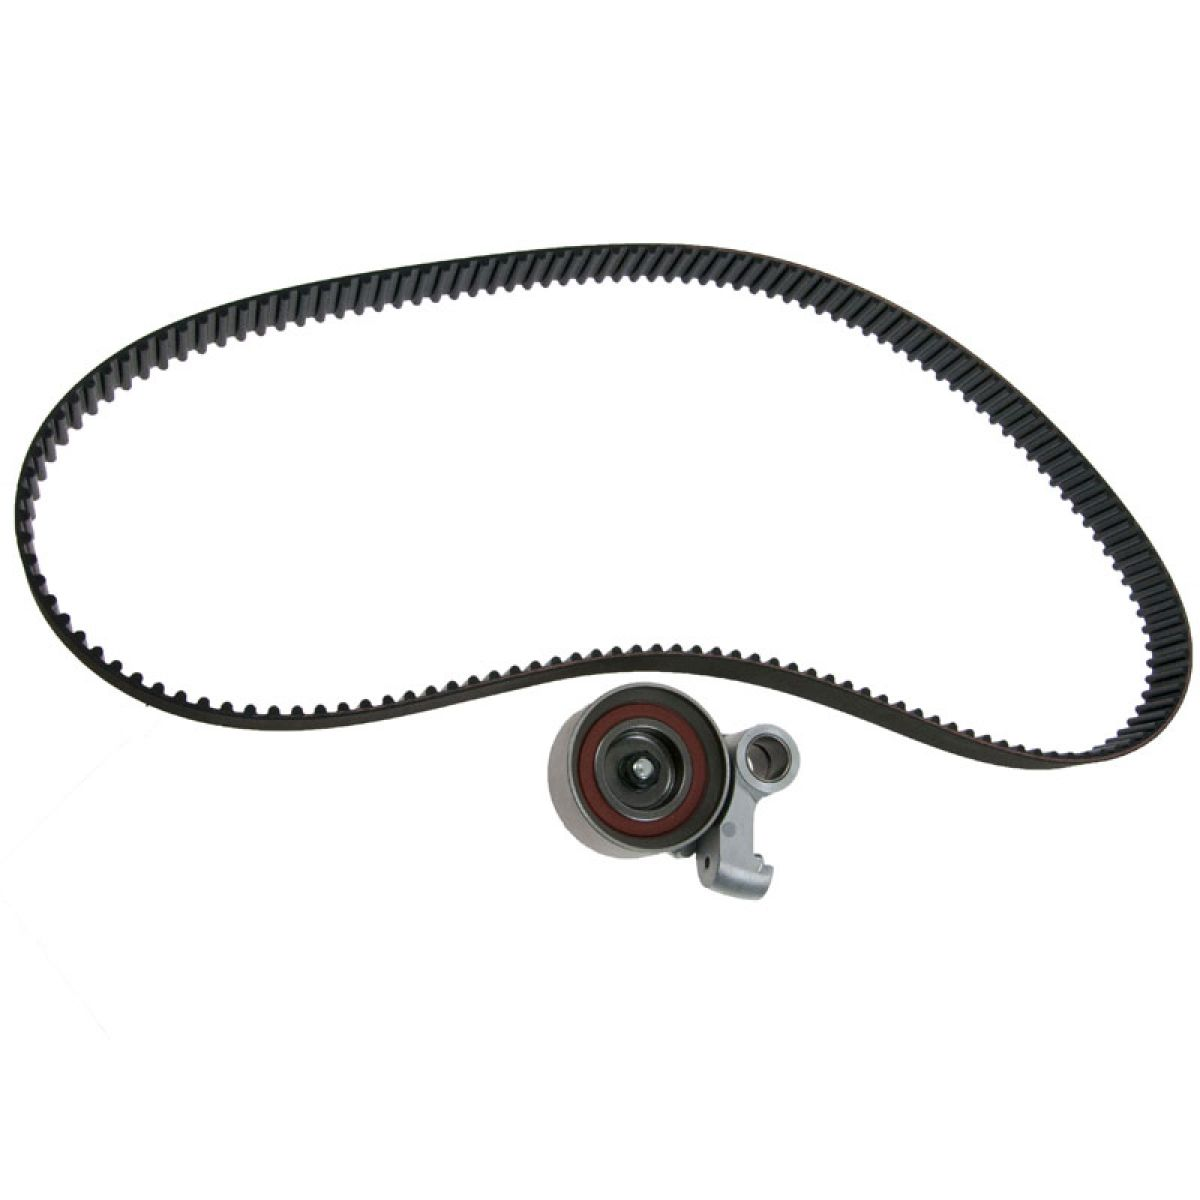 GATES TCK215 Timing Belt w/ Tensioner Pulley For Lexus